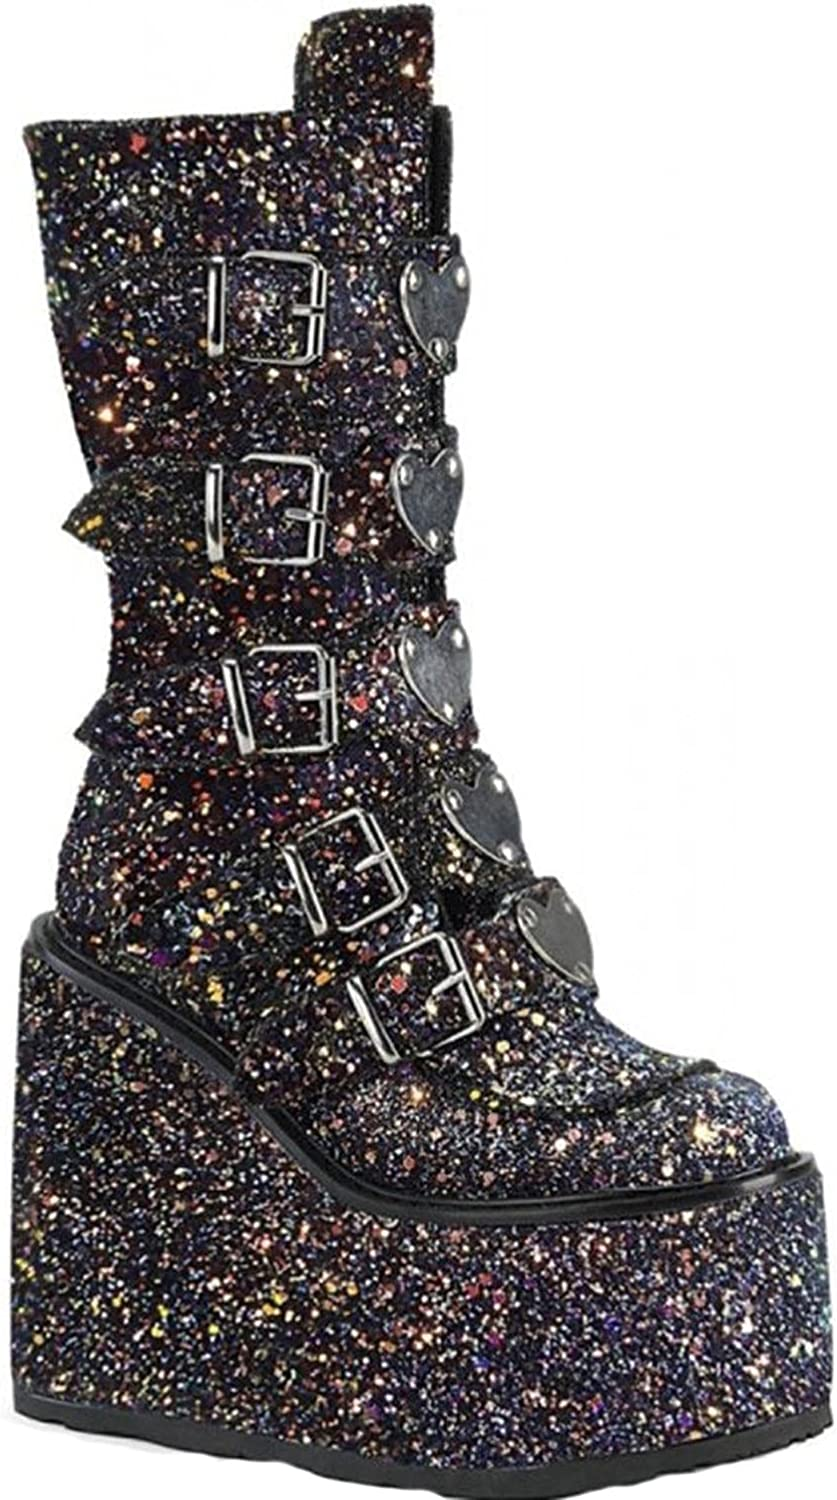 ZBRO Women's Goth Wedge Ankle Boots Gothic Buckle Platform High Heel Punk Booties, Glitter Goth Platform Boots for Women, Mid Calf Boots Sexy Chunky Thick Heel Combat Boots Punk Goth Boots